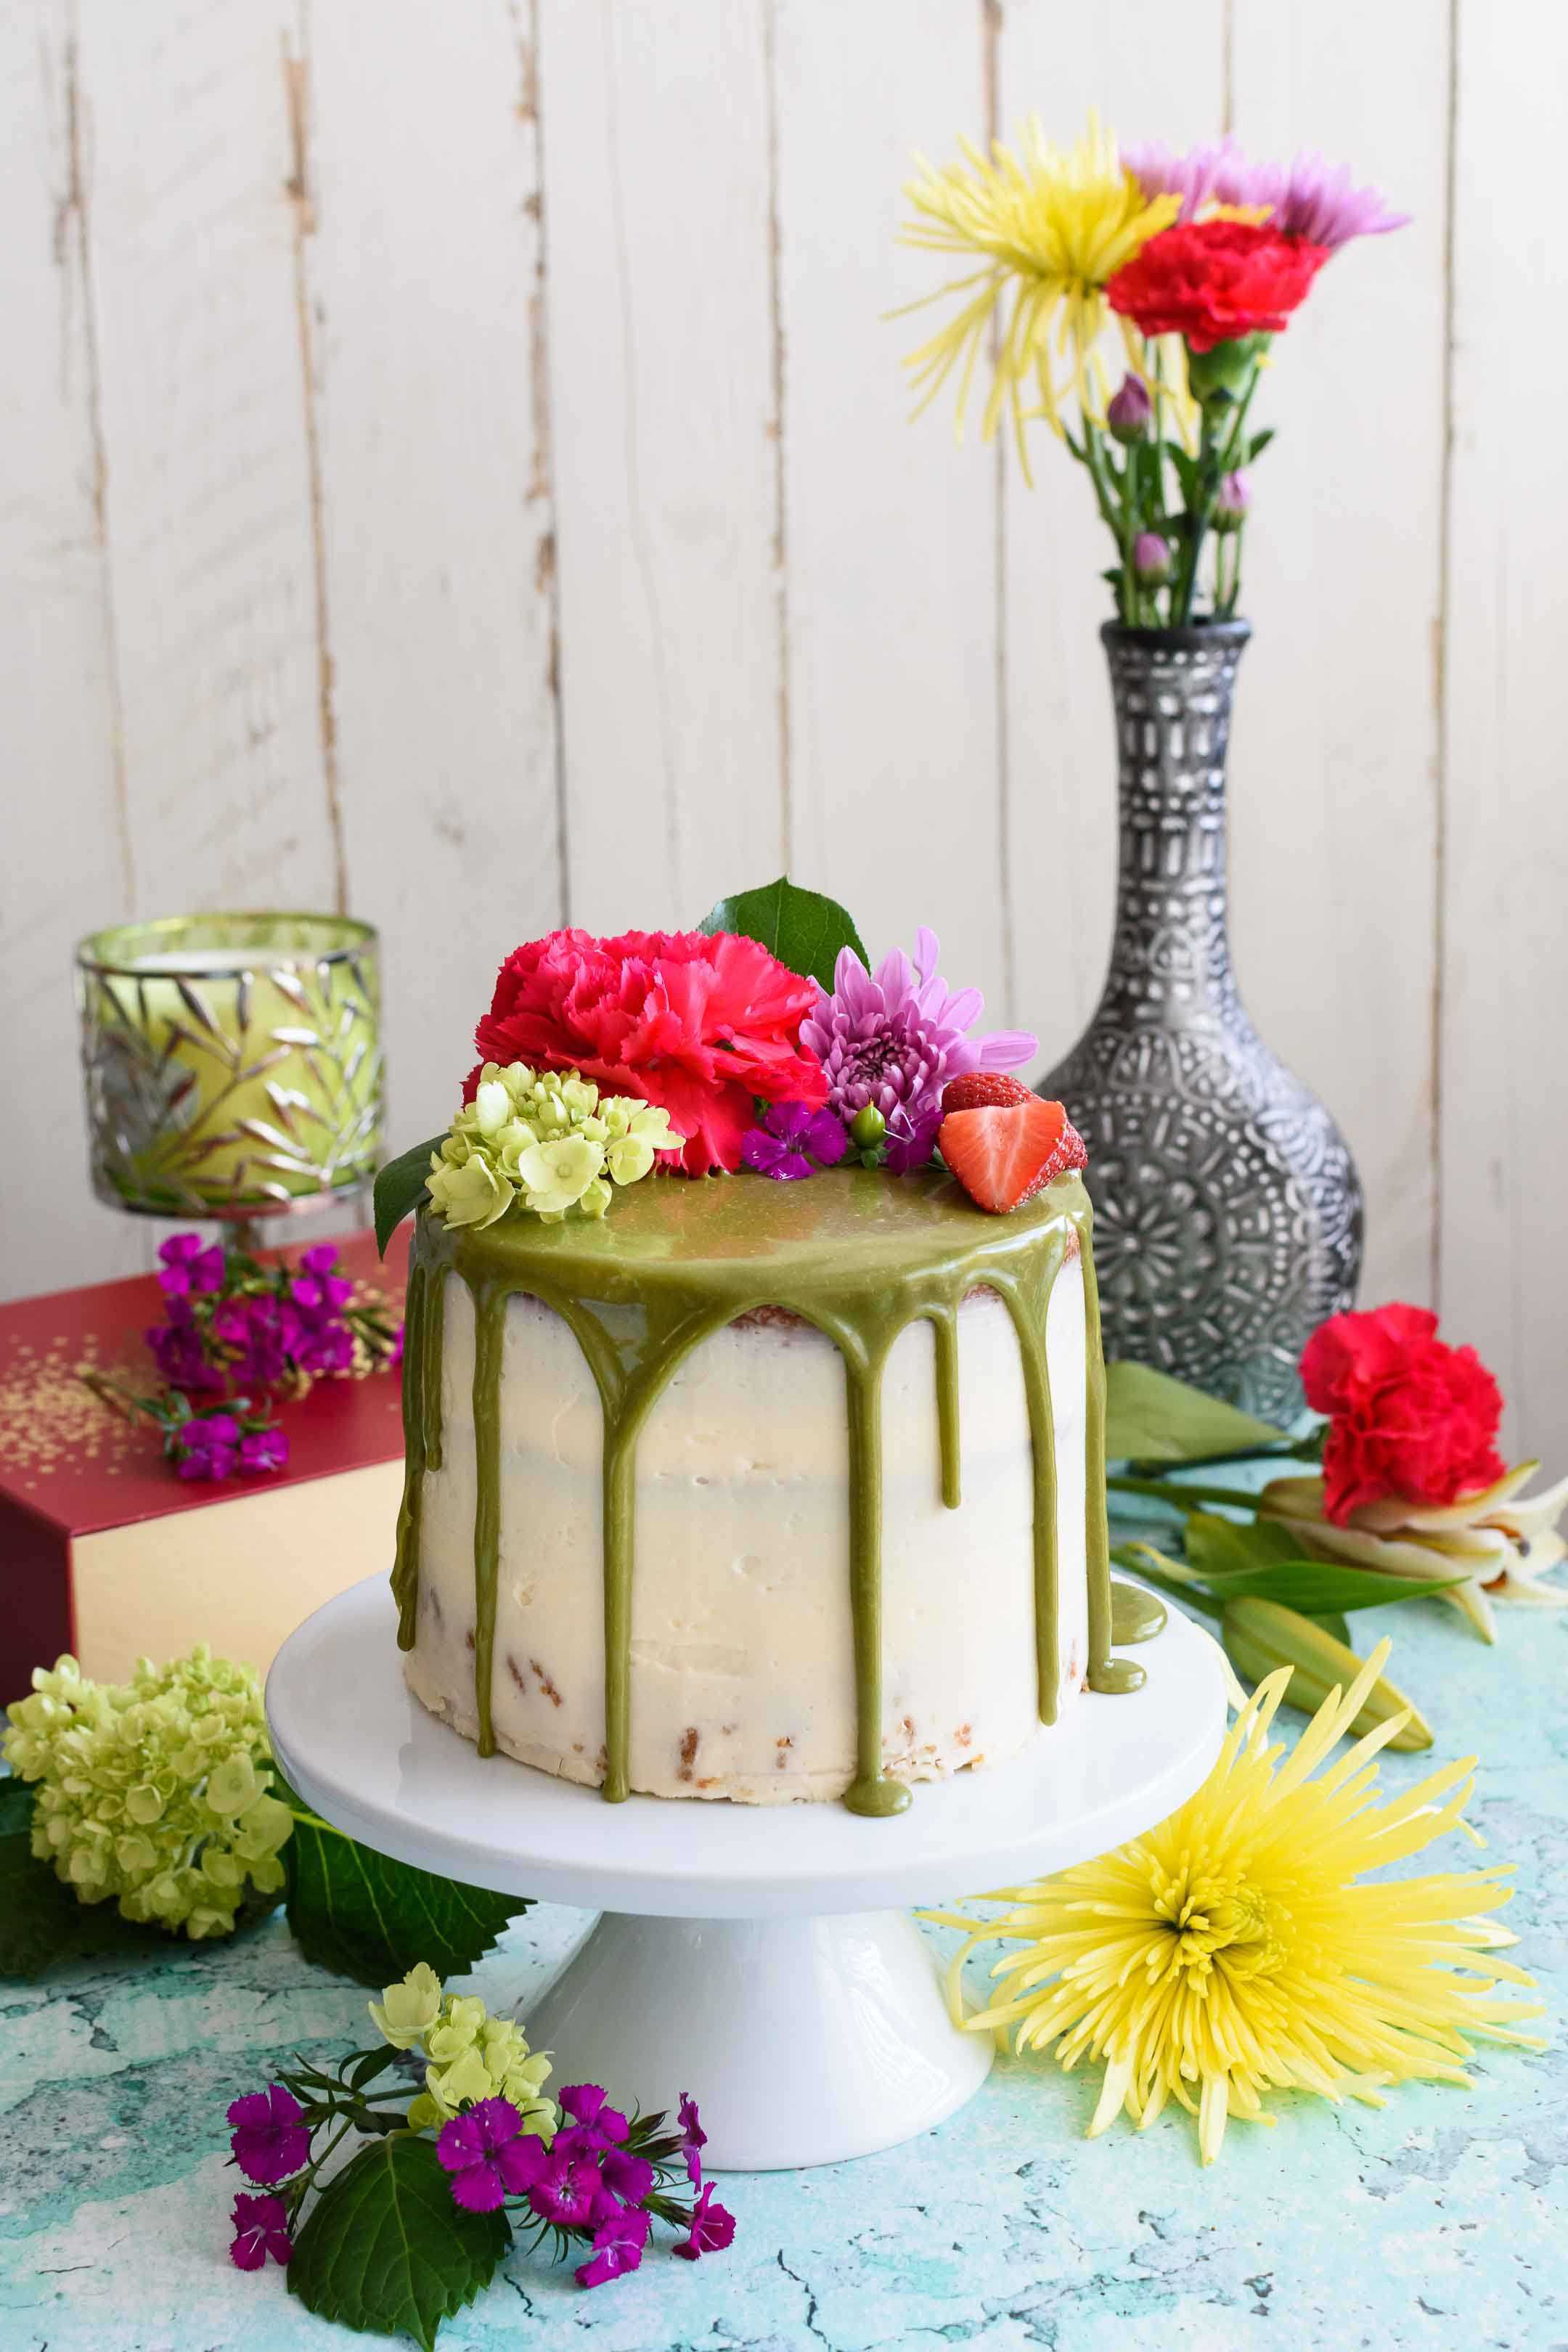 Cool Matcha Cake With Buttercream Frosting And White Chocolate Matcha Funny Birthday Cards Online Aboleapandamsfinfo